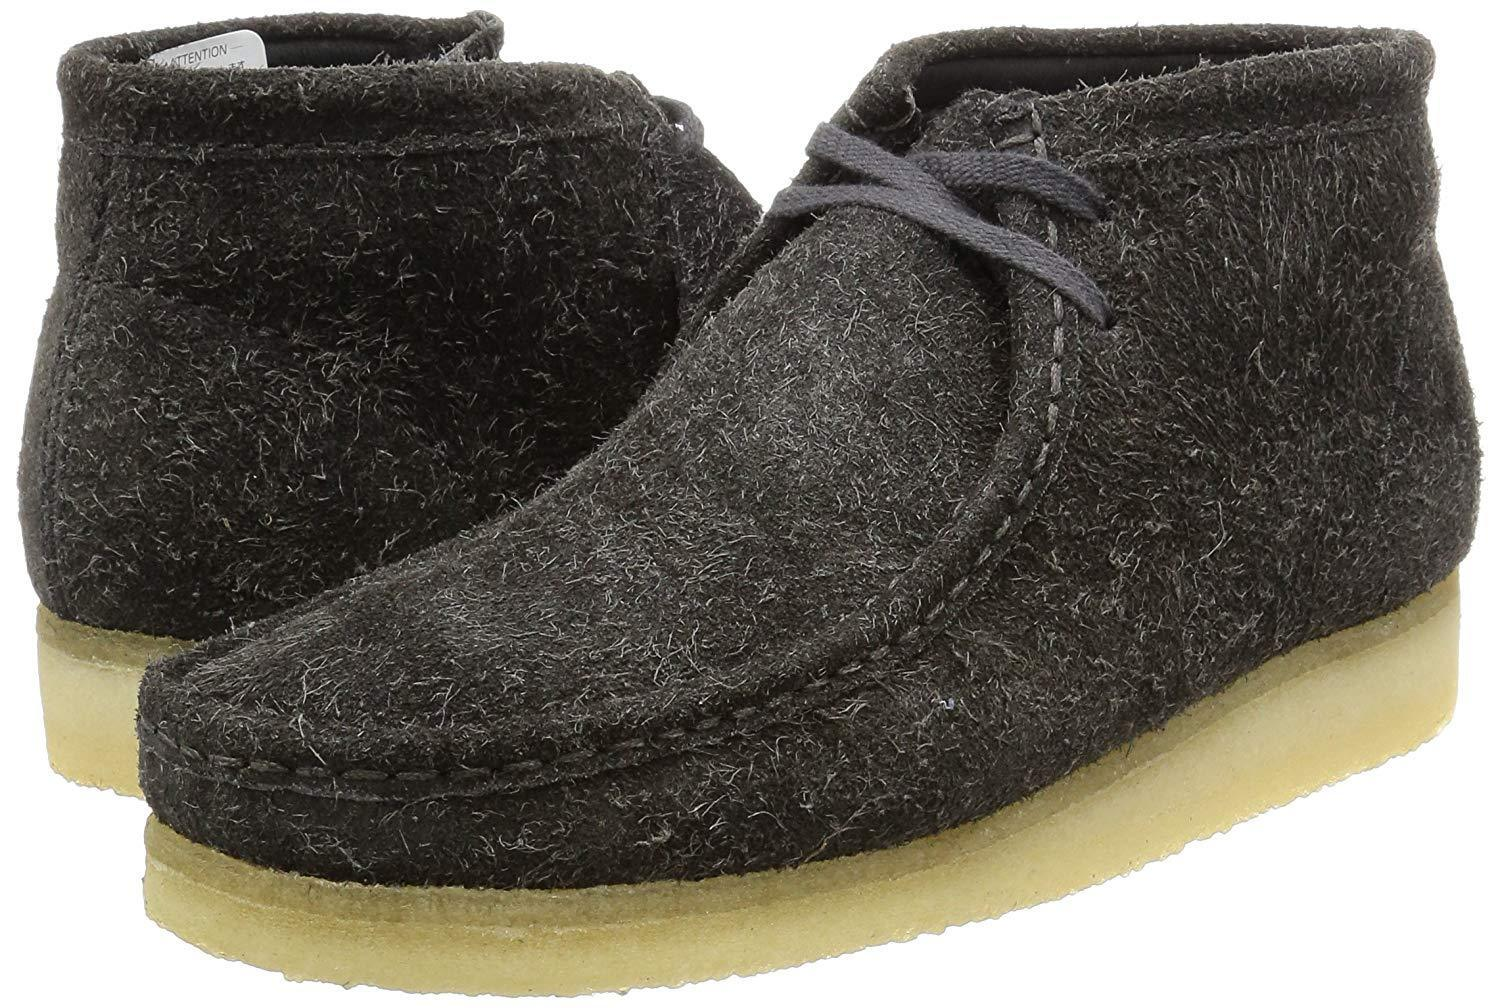 Clarks Originals  Uomo  Wallabees Grau Warmlined Suede Suede Suede   Limited Stock  368571